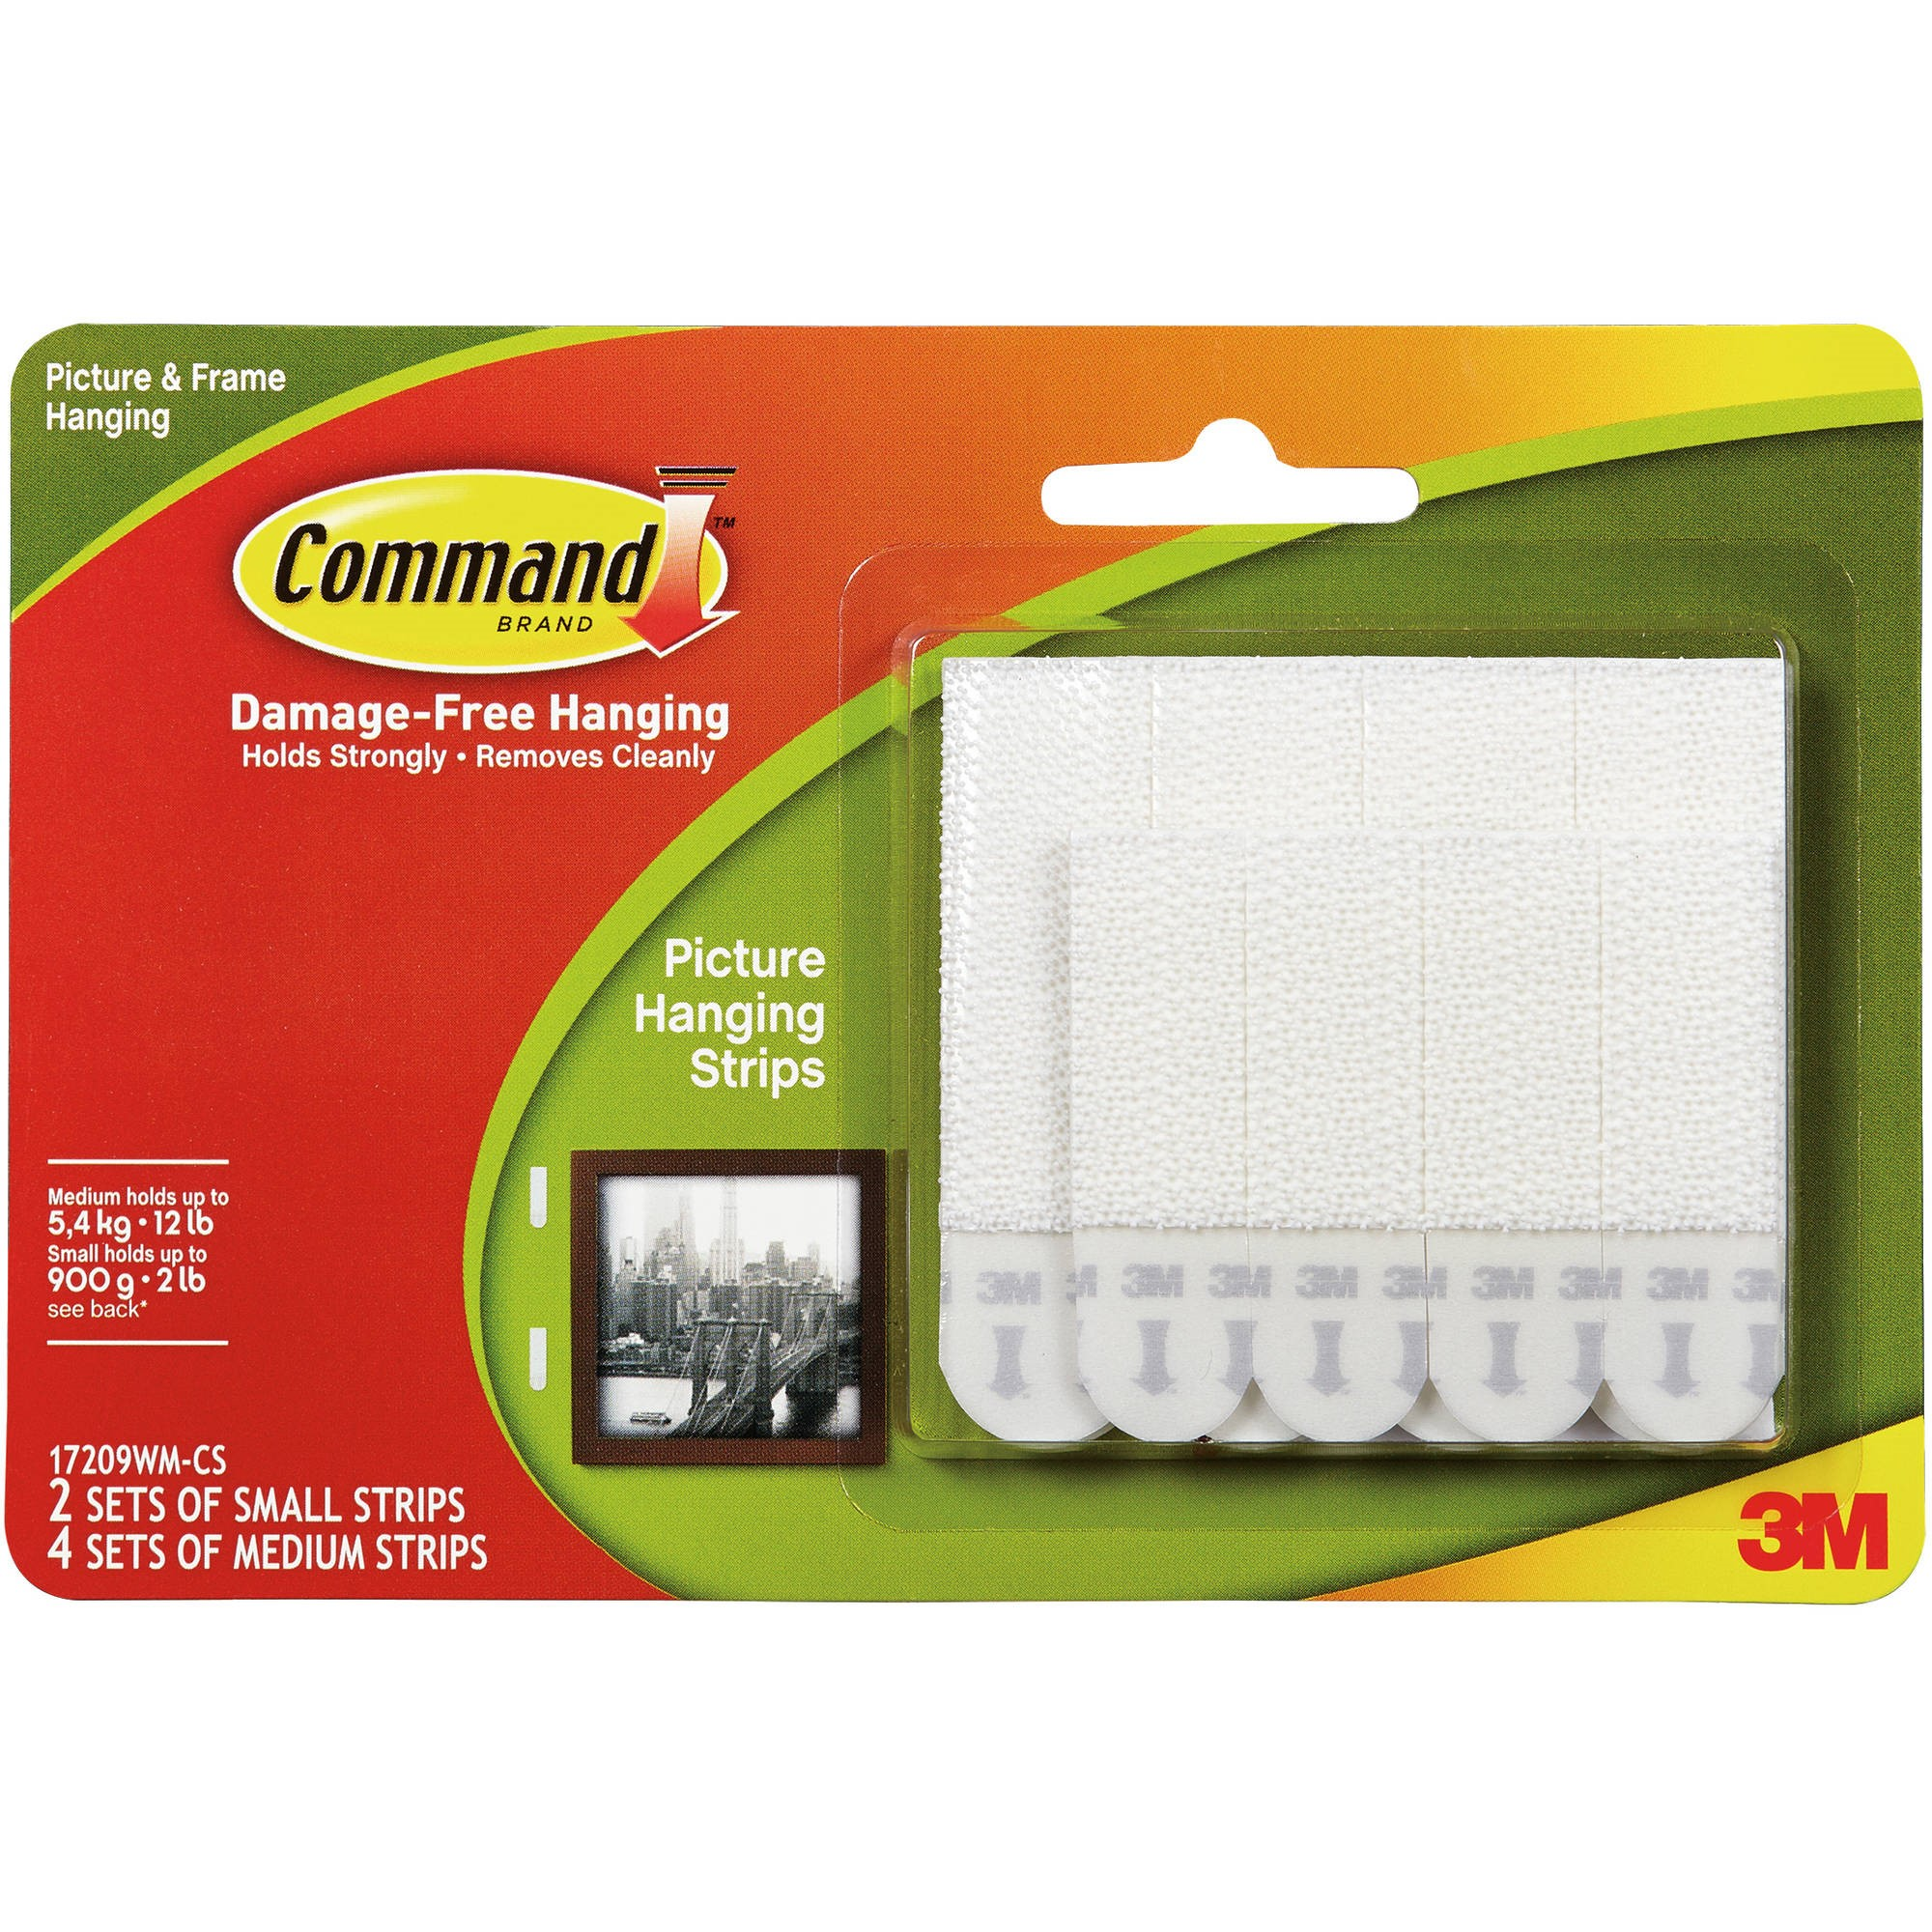 Command Picture Hanging Strips Value Pack, 2 Sets of Small Strips, 4 Sets of Medium Strips